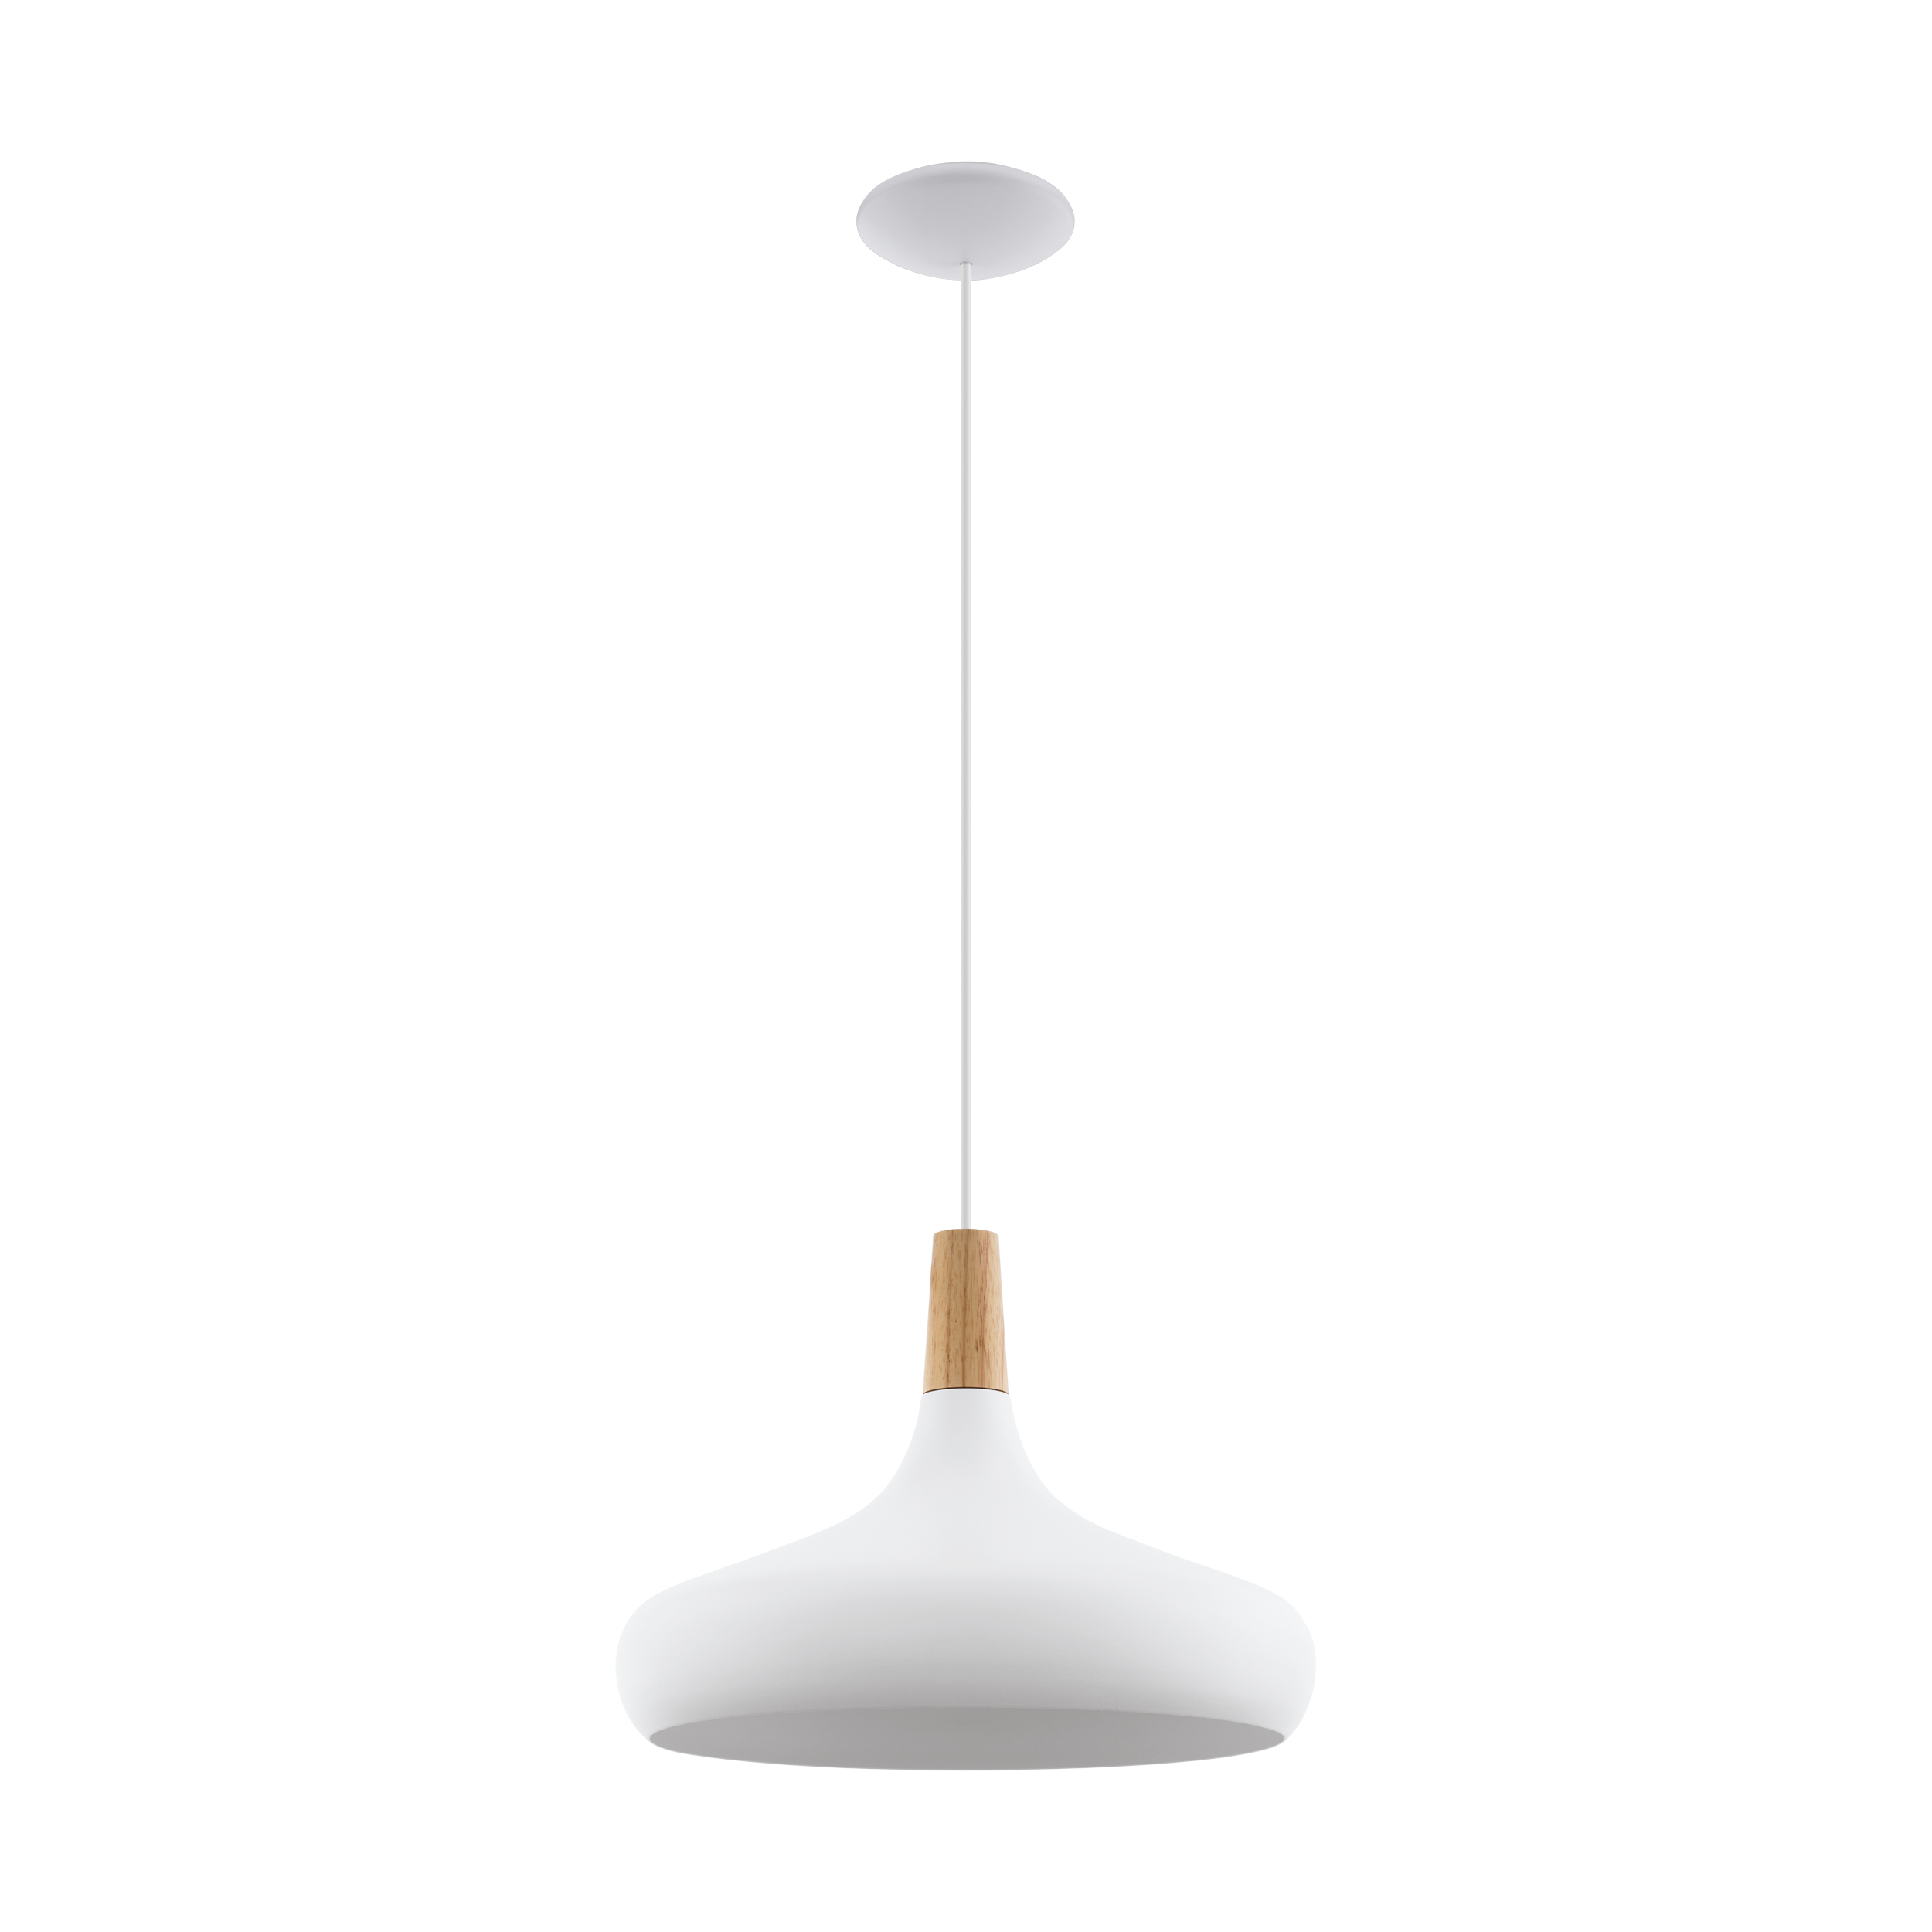 lights romendo eglo collections lighting products interior light international main